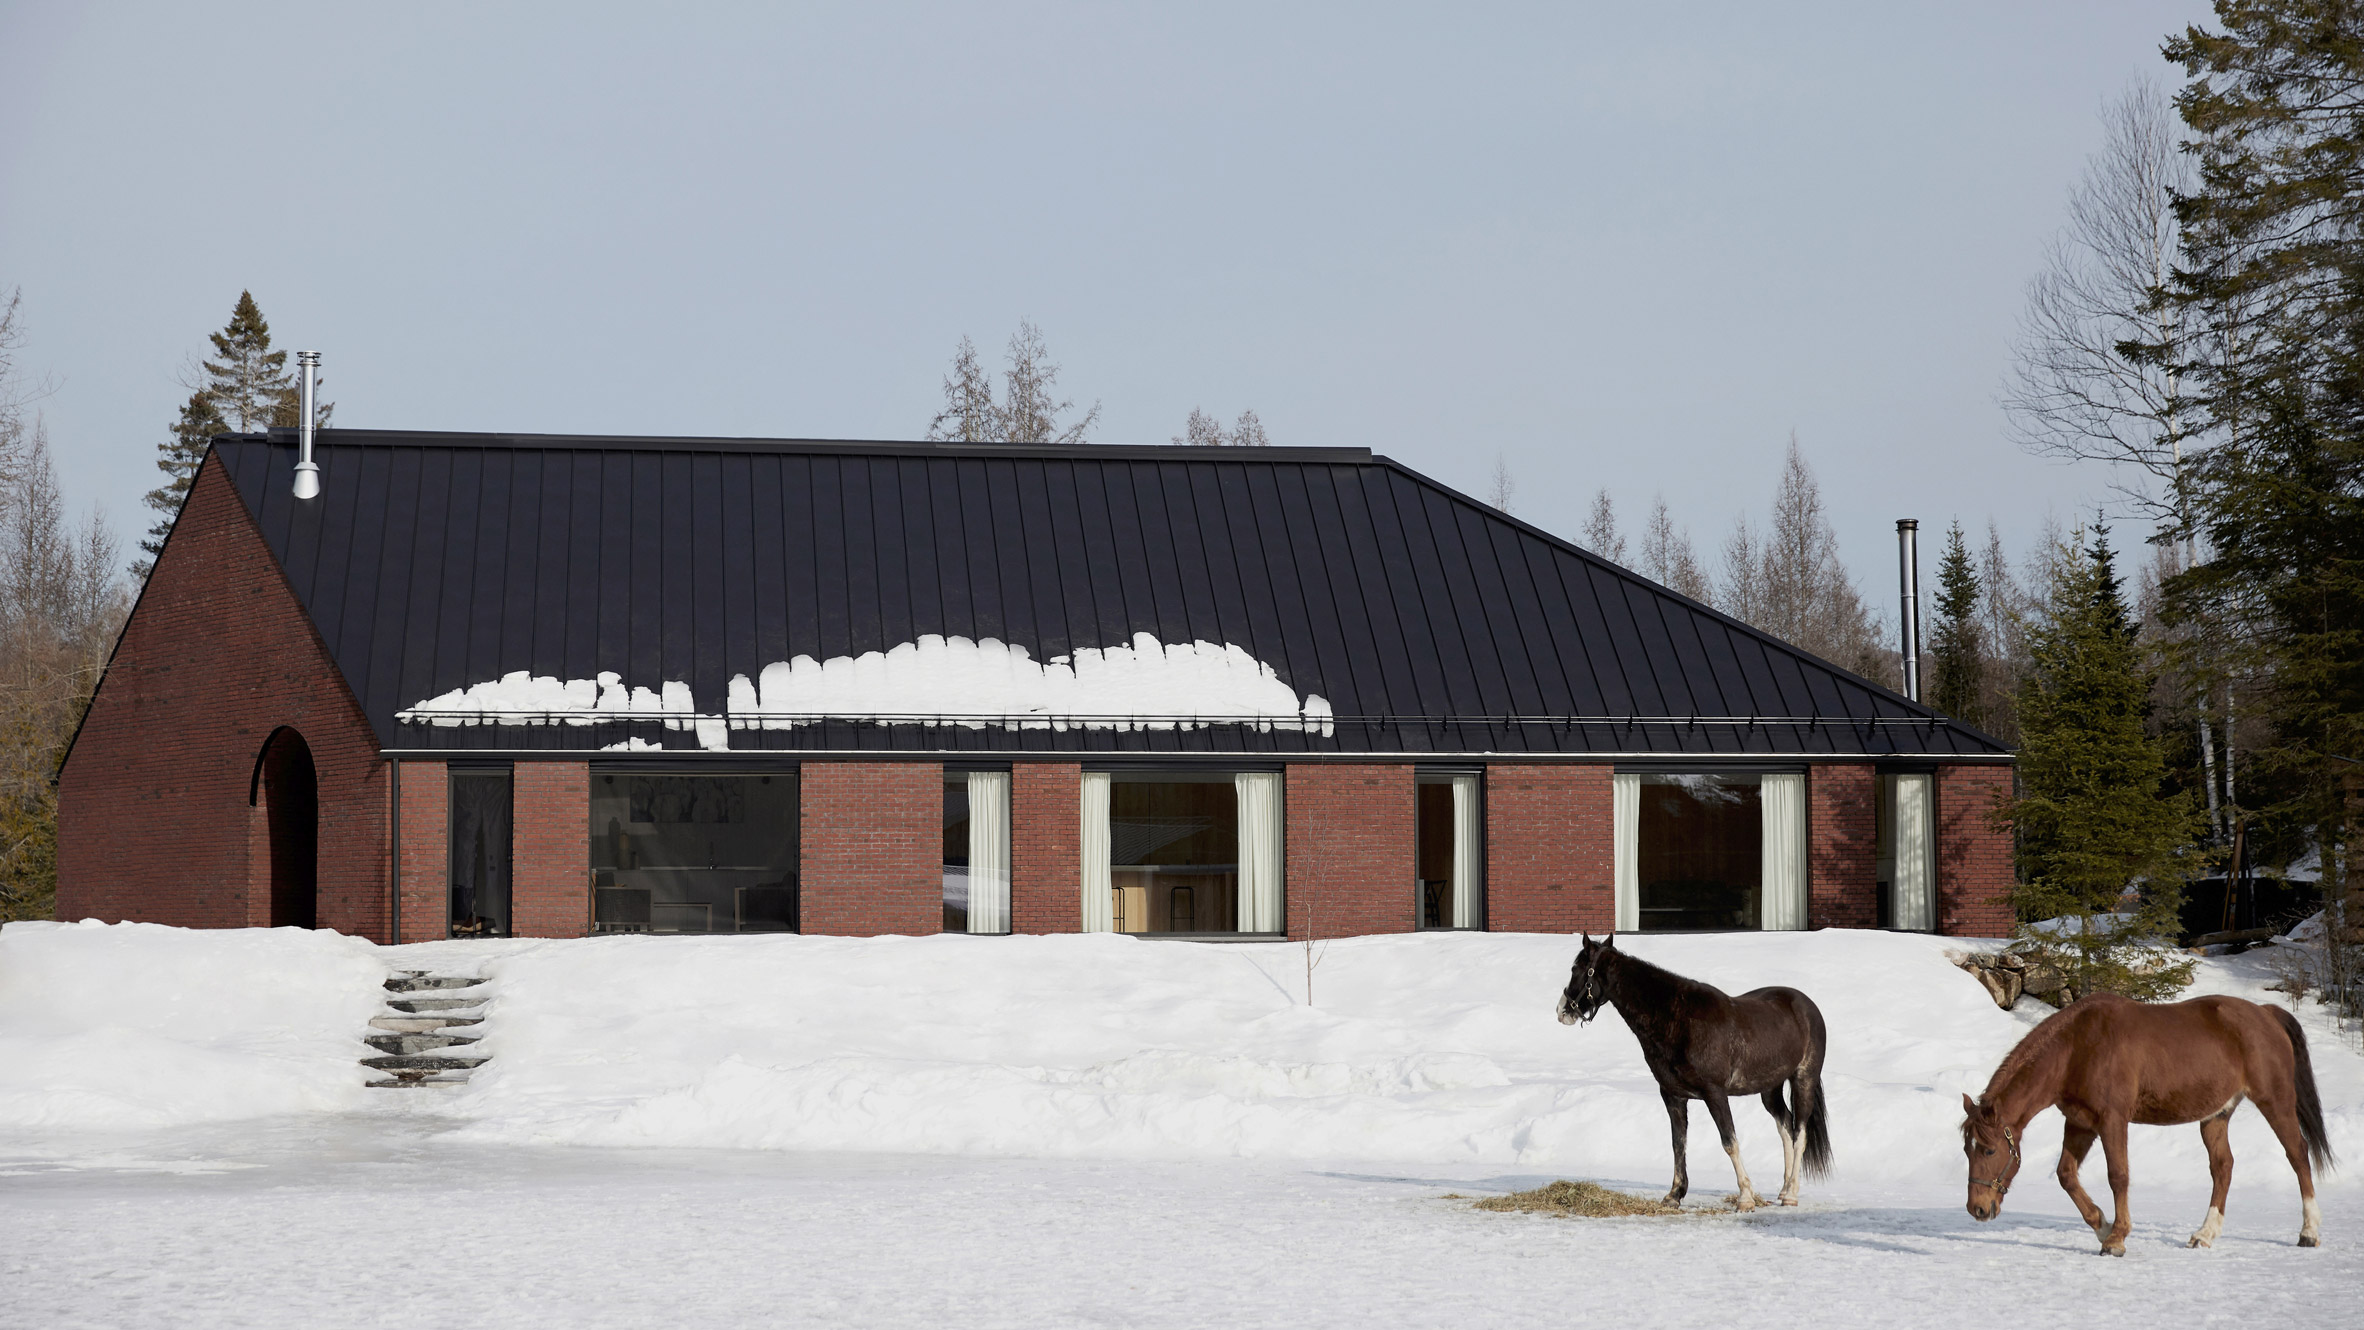 Minimalist art and horse stables influence rural Gauthier Residence by Atelier Barda